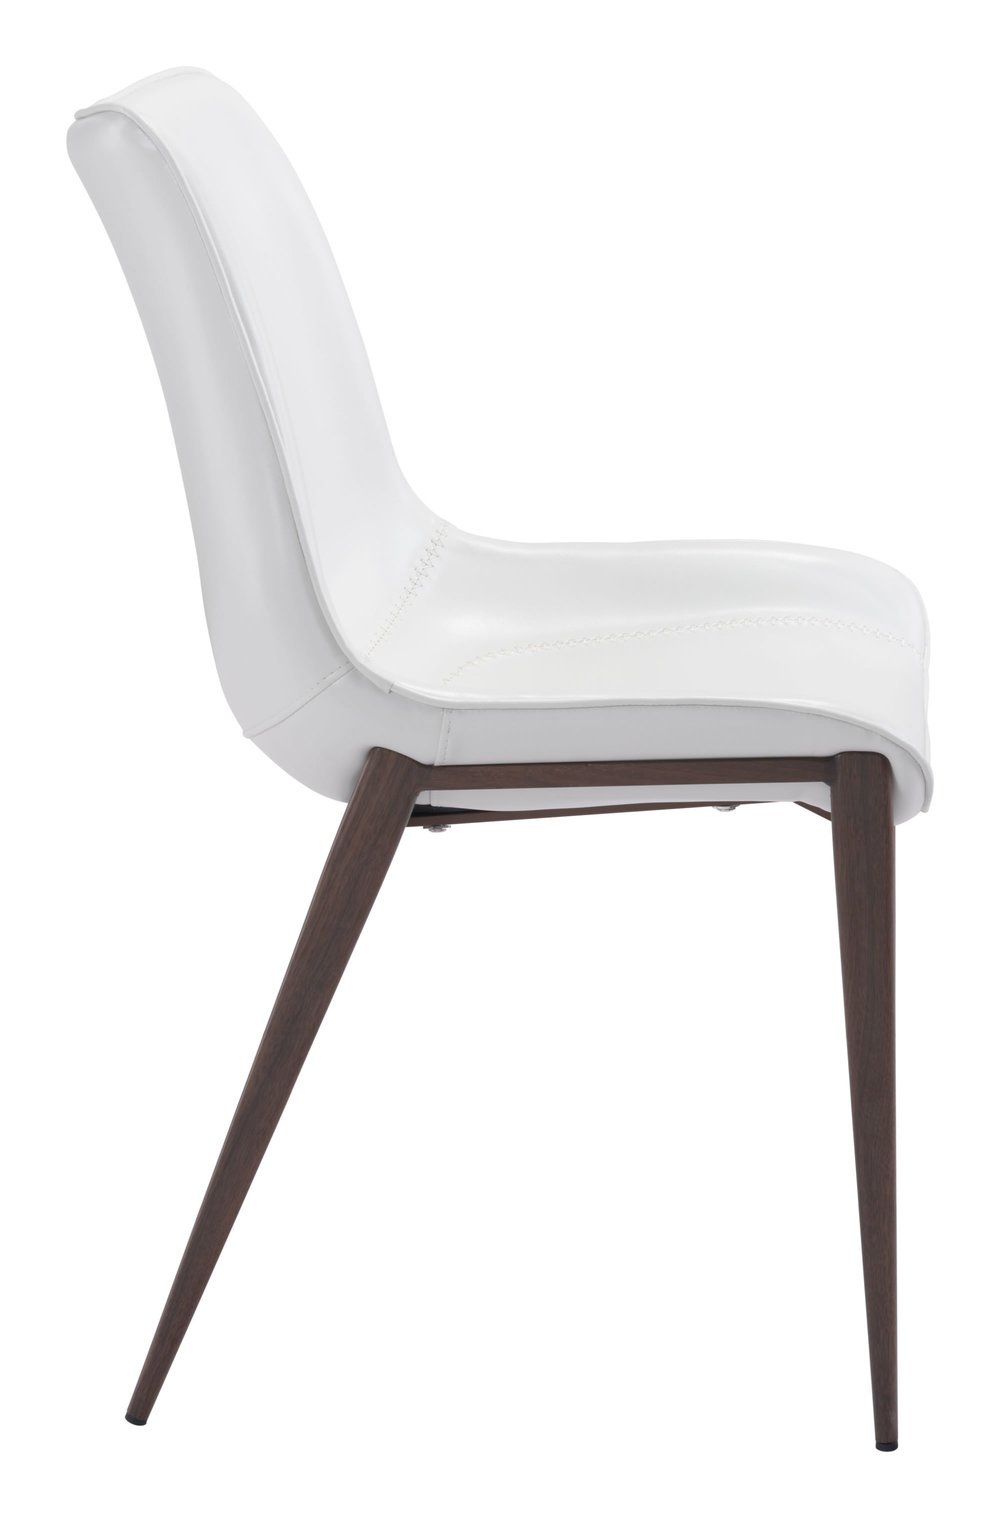 Zuo Modern Contemporary - Magnus Dining Chair - Set of 2 - White & Walnut